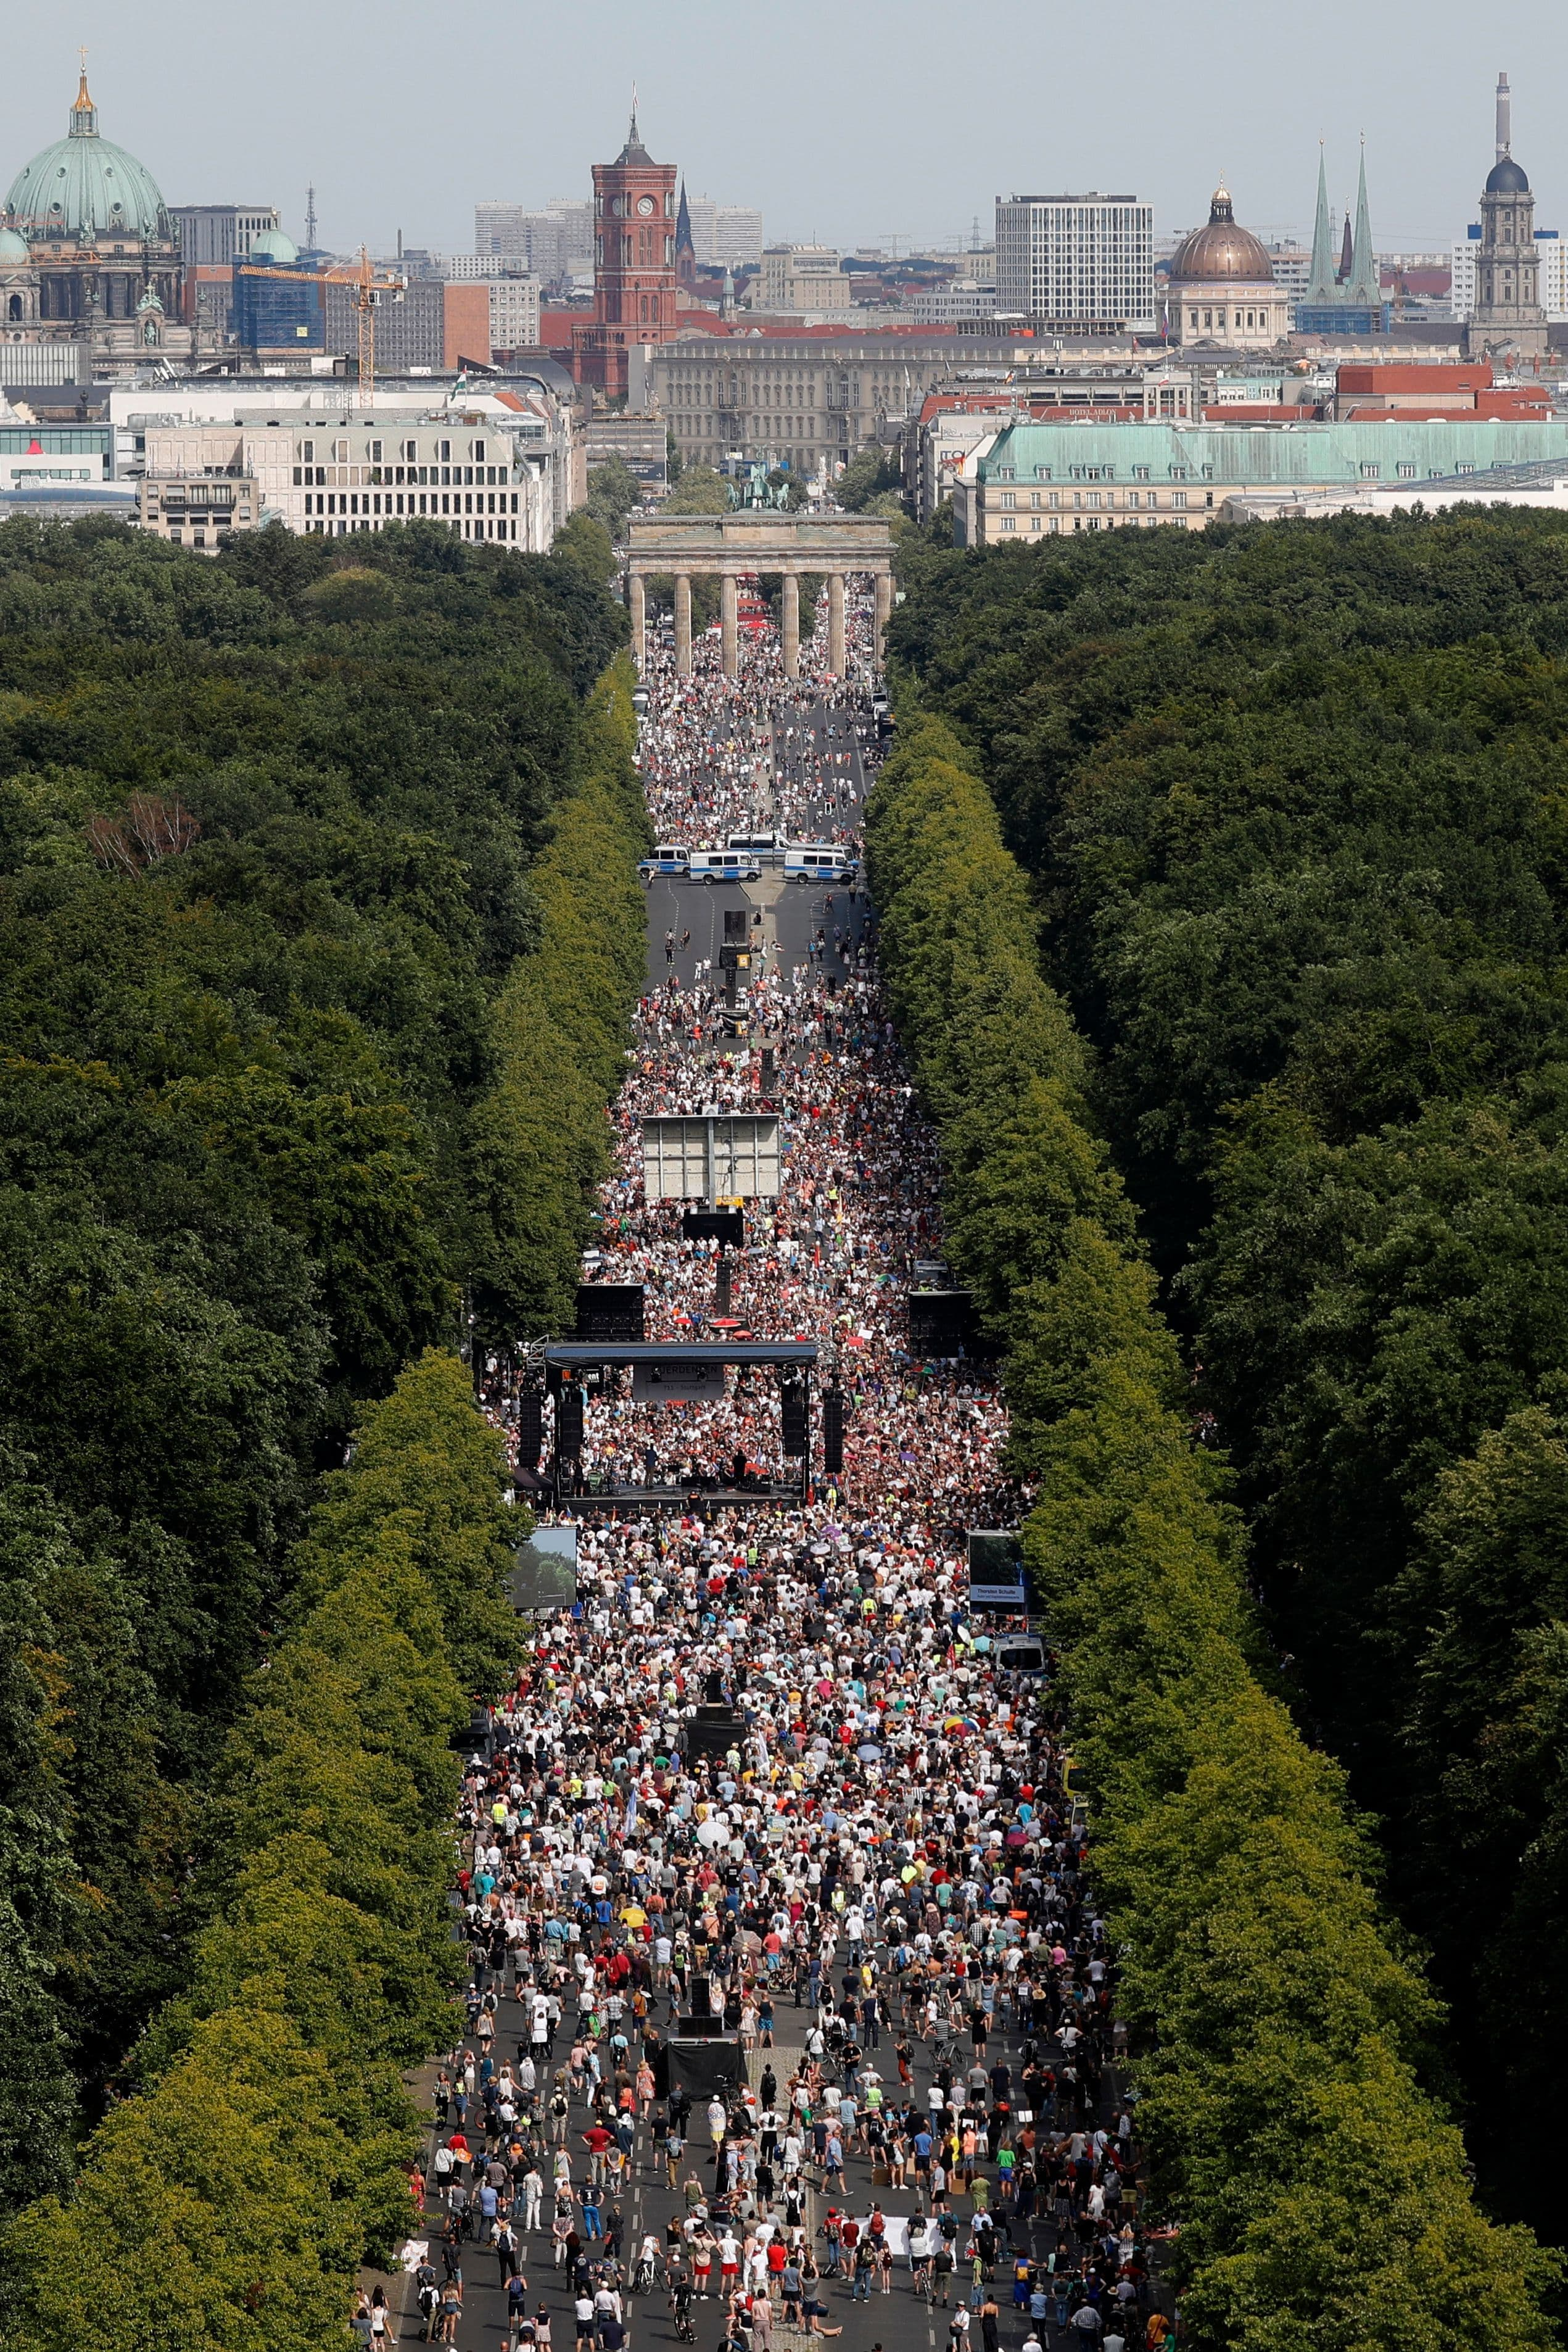 People gather at the Brandenburg gate for a demonstration in Berlin, Aug 1. — AP